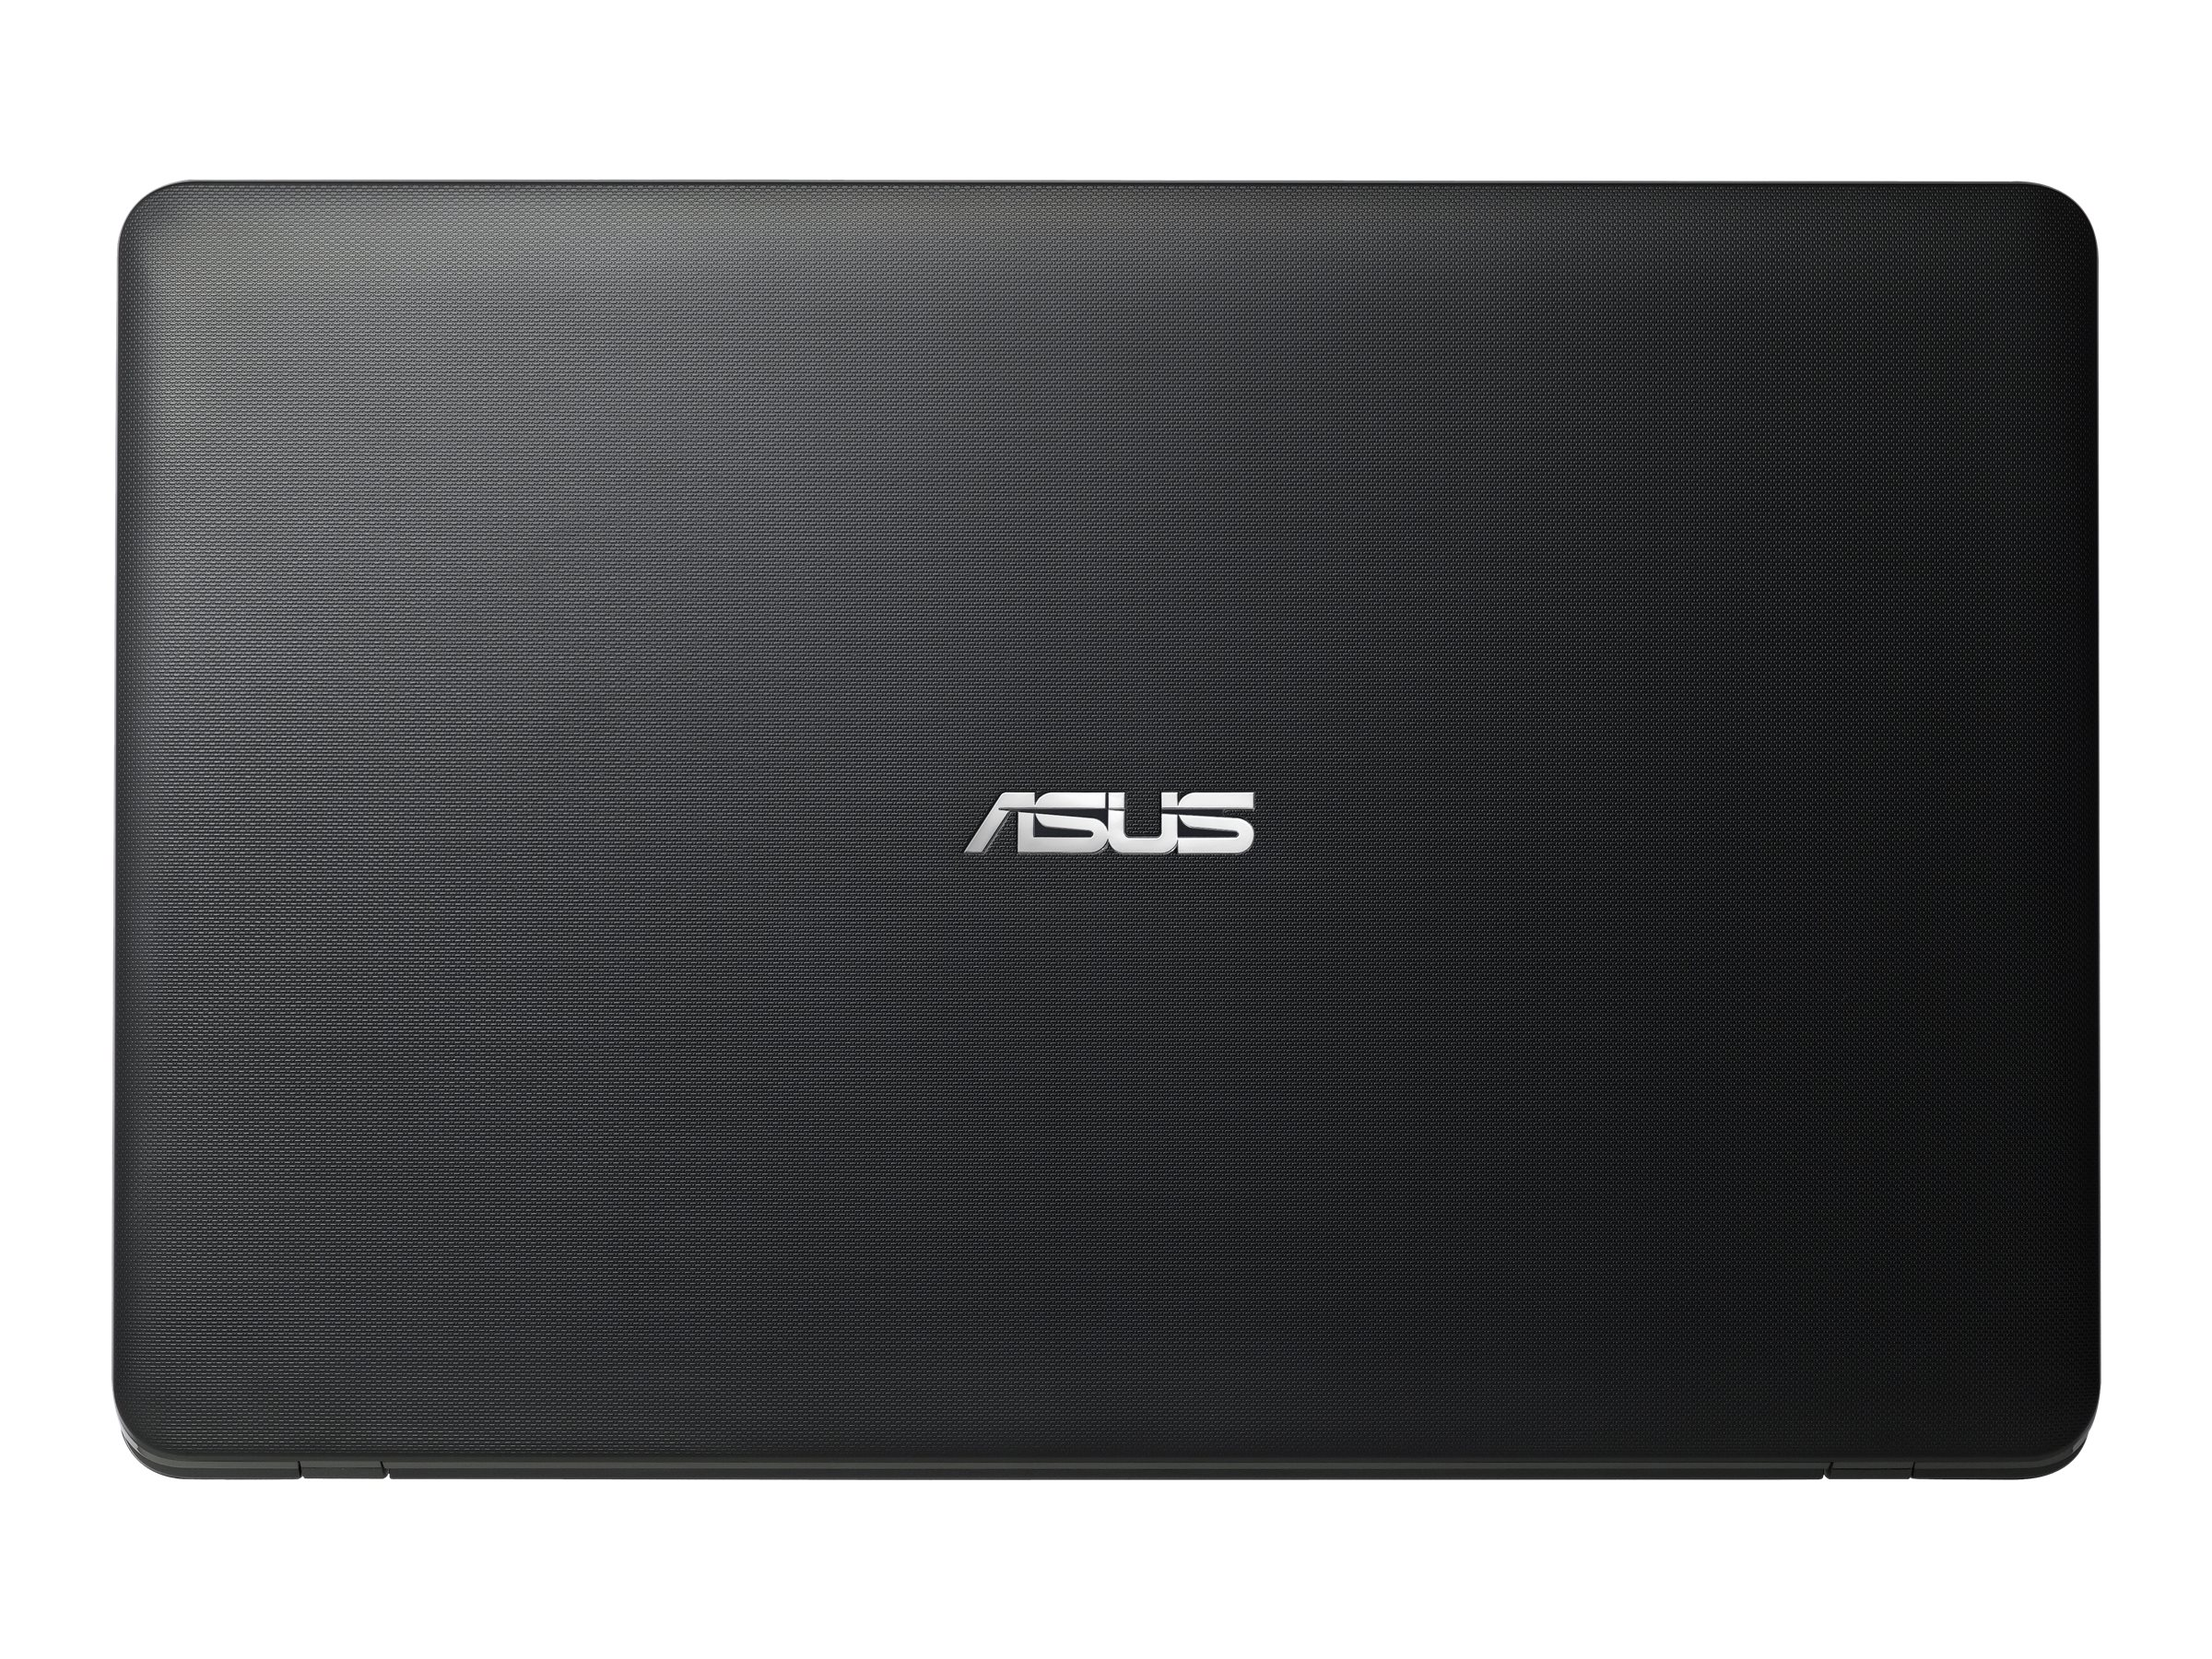 Asus Notebook PC Pentium N3700 8GB 1TB 17 W10, 90NB07M1-M00670